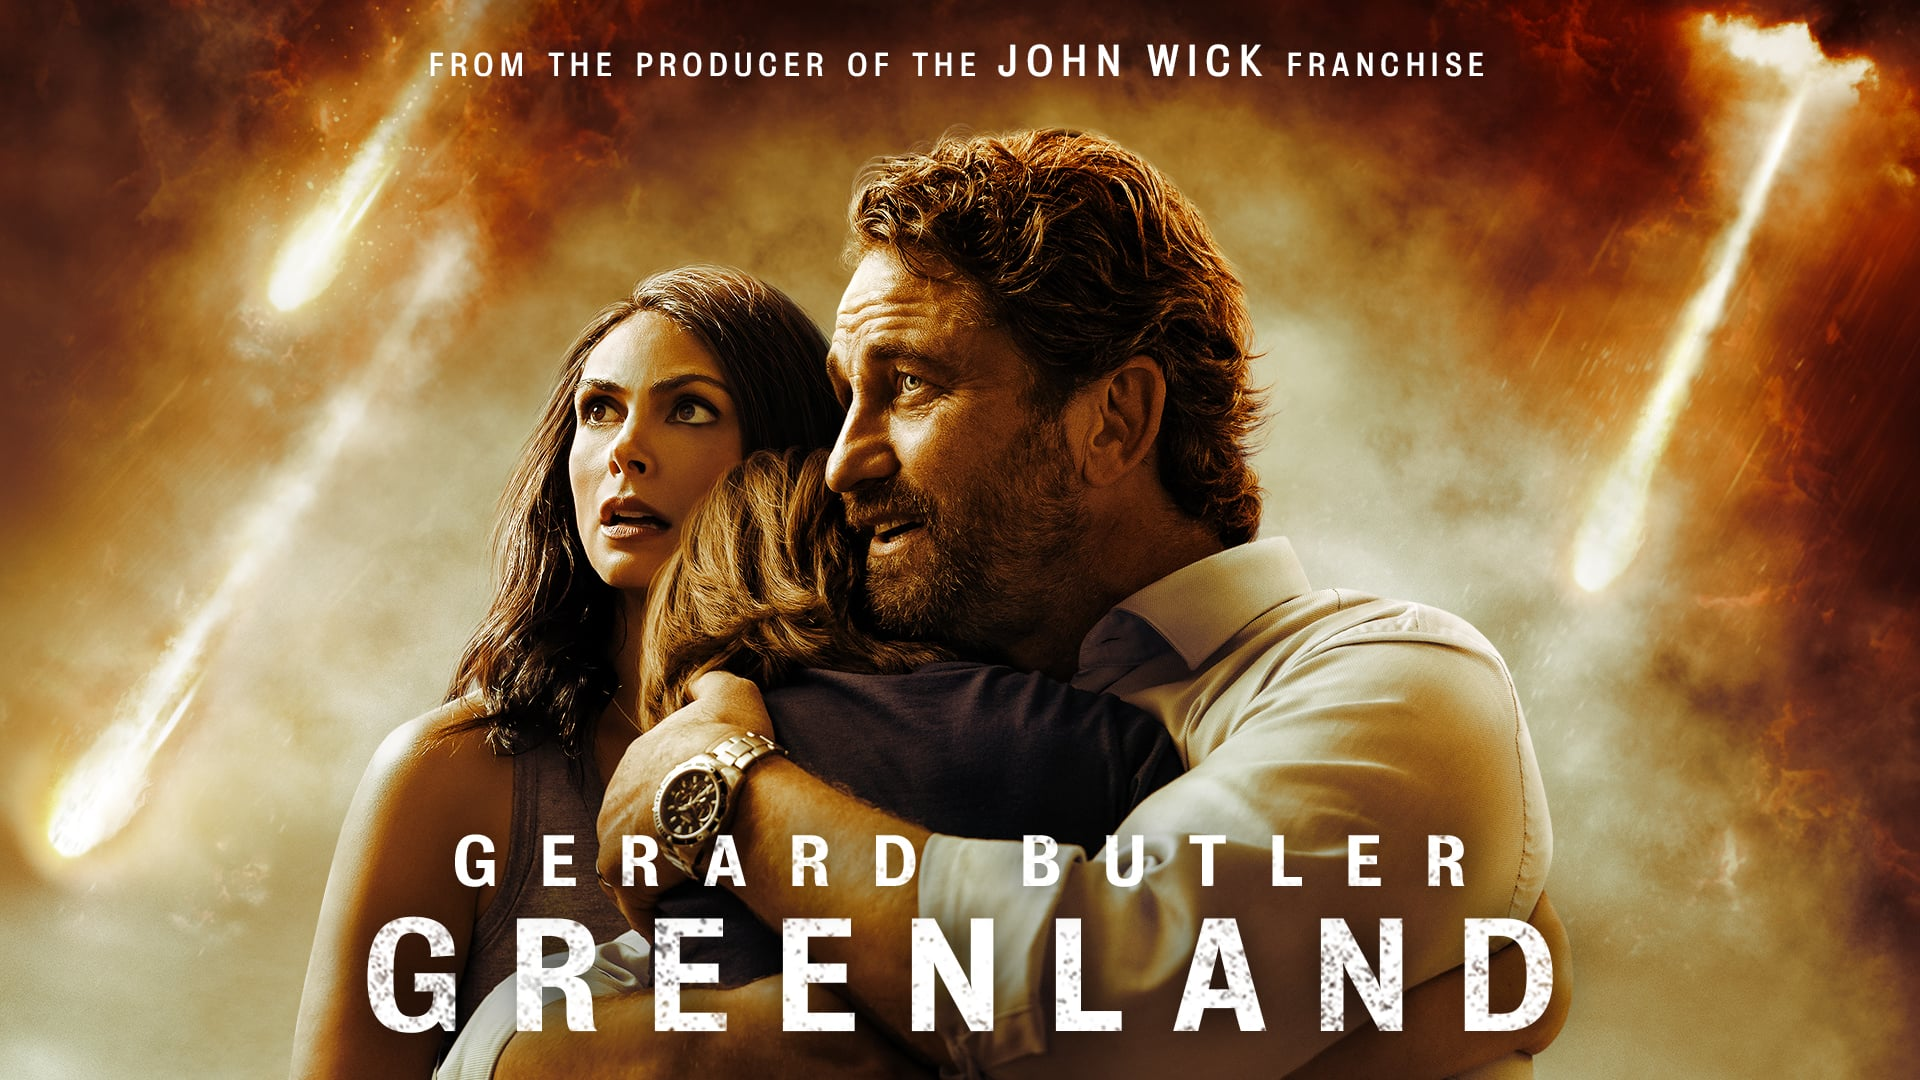 Digital Films: Greenland (UHD Movie) $2.99 to Rent, $9.99 to buy on Amazon $2.99